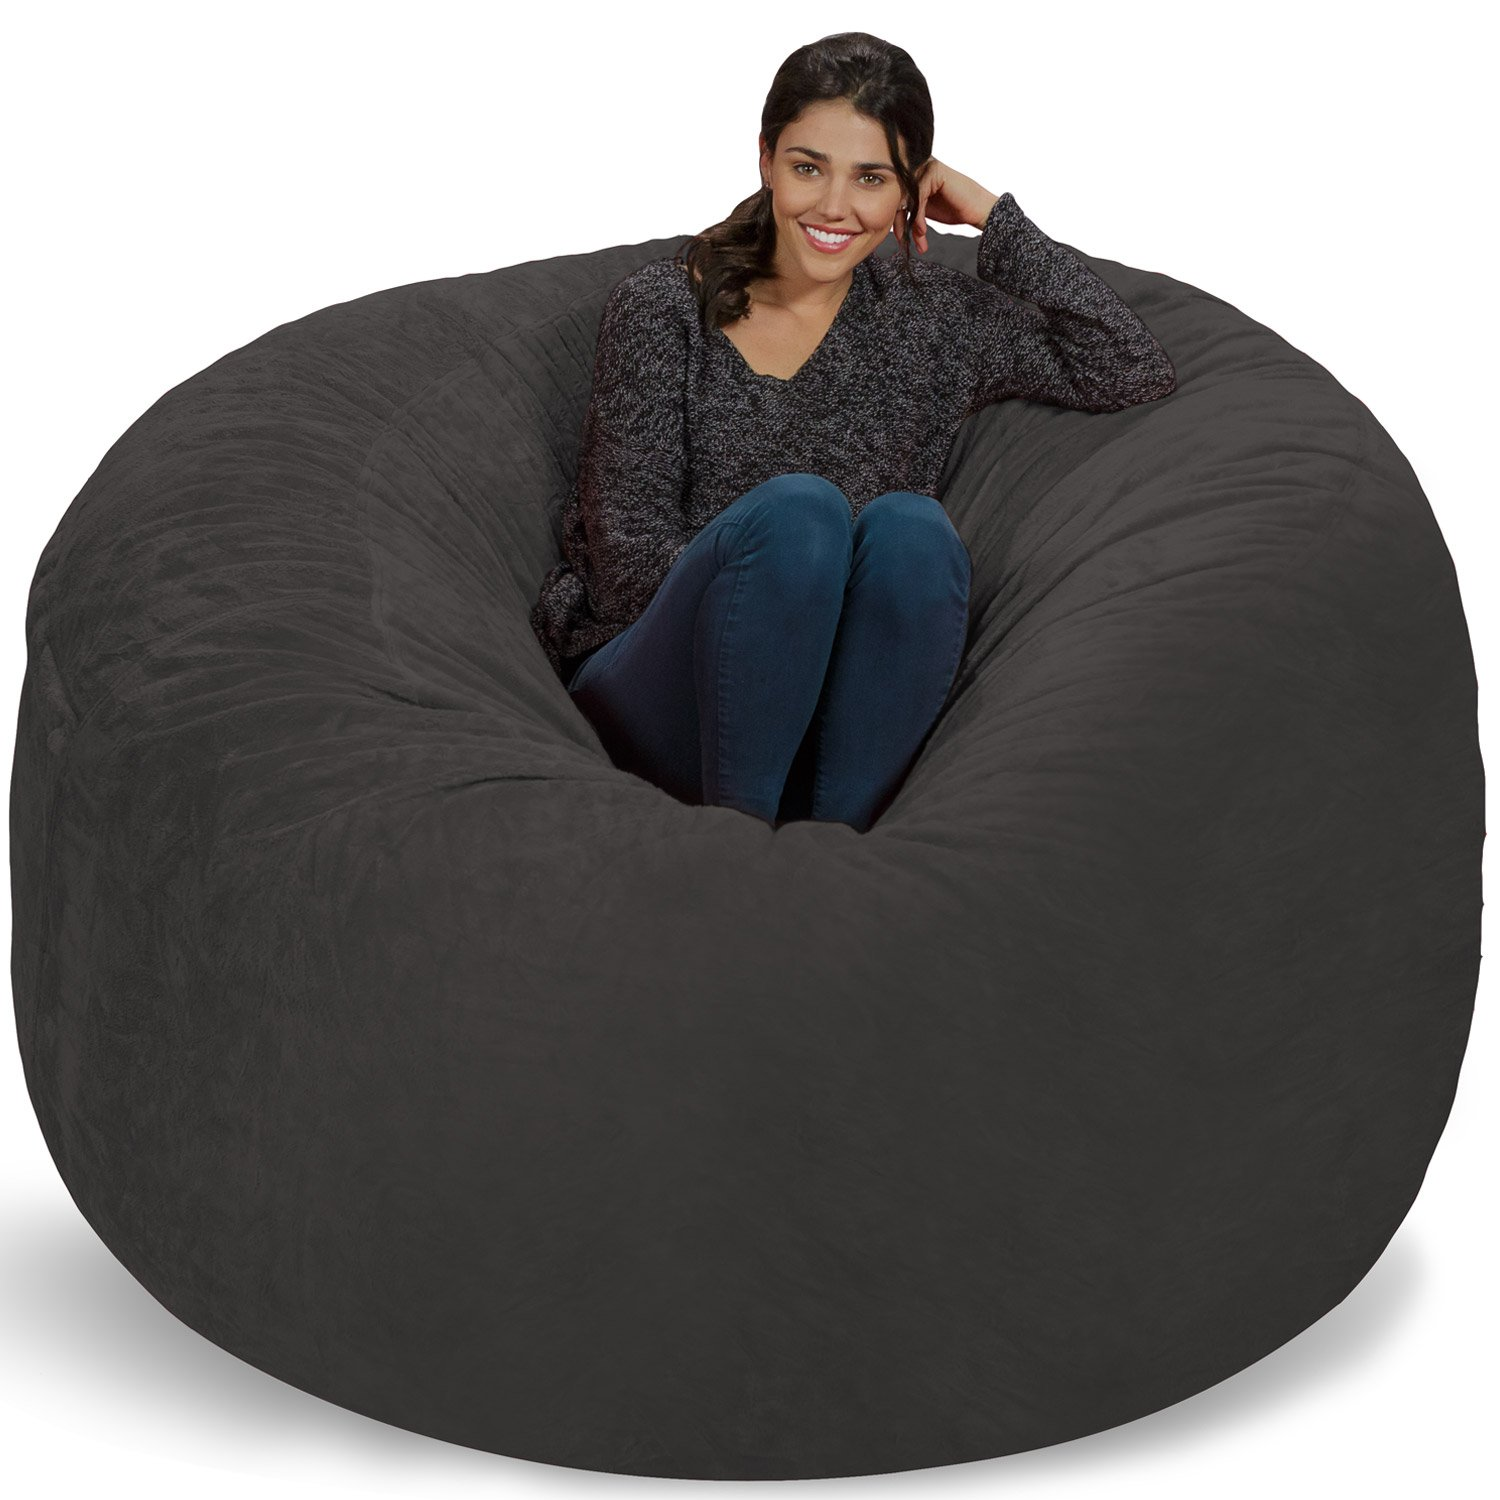 Chill Sack Bean Bag Chair: Giant 6' Memory Foam Furniture Bean Bag - Big Sofa with Soft Micro Fiber Cover - Grey Furry by Chill Sack (Image #1)